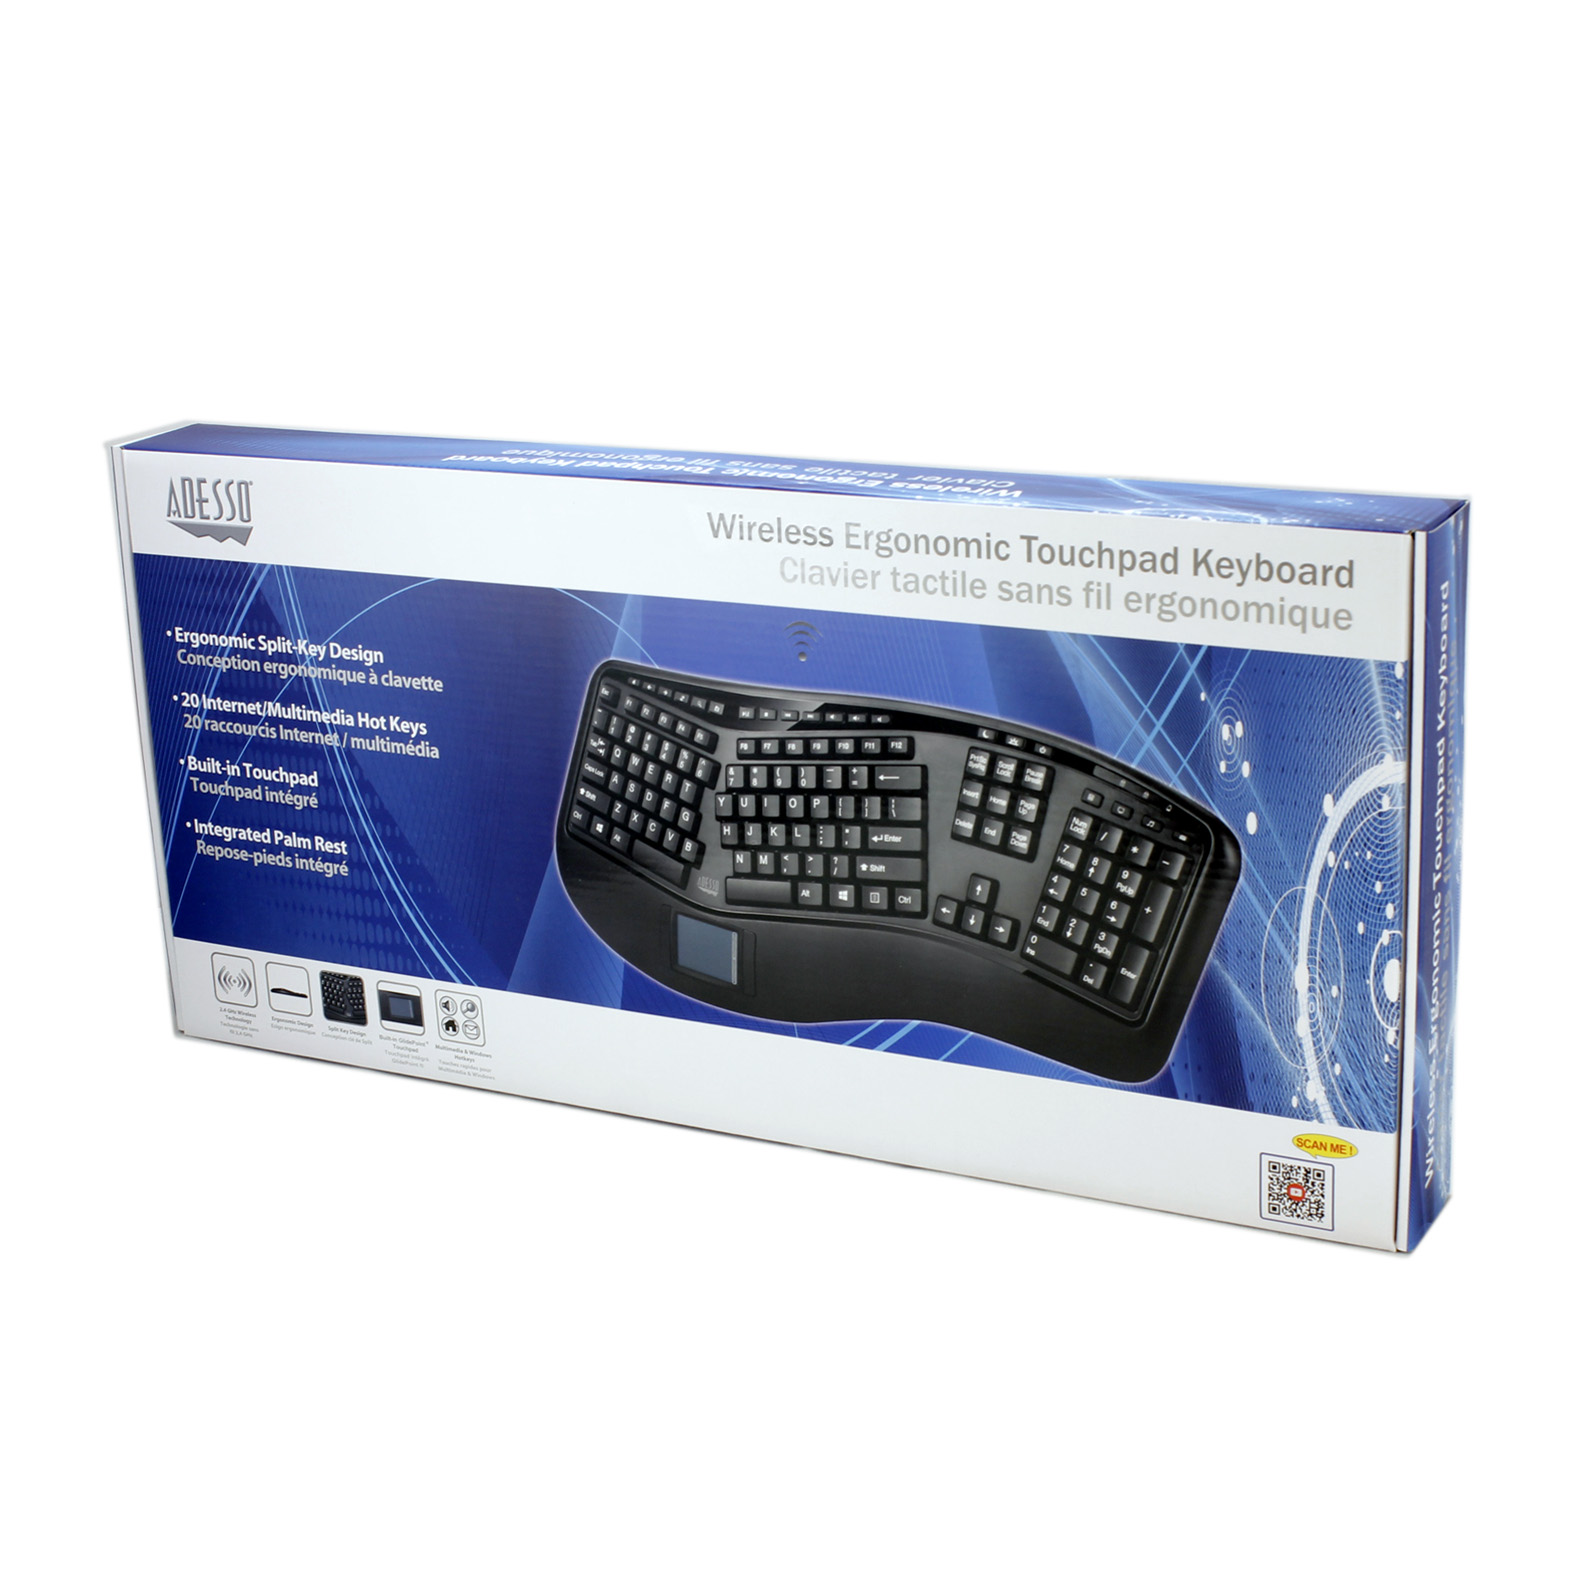 Tru-Form™ 4500 - 2.4GHz Wireless Ergonomic Touchpad Keyboard on